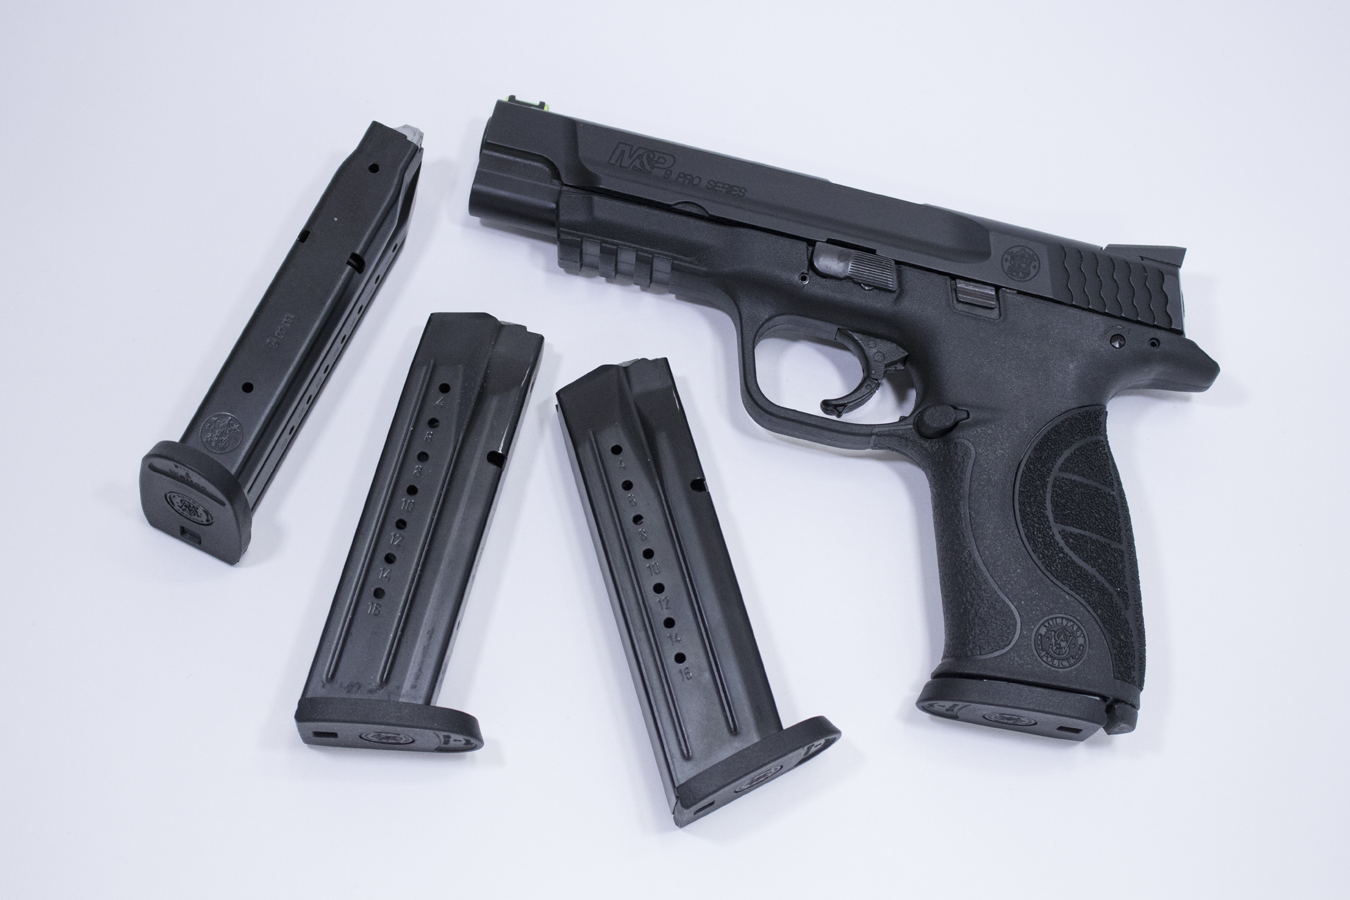 Smith & Wesson M&P9 Pro Series 9mm Used Pistols With Four